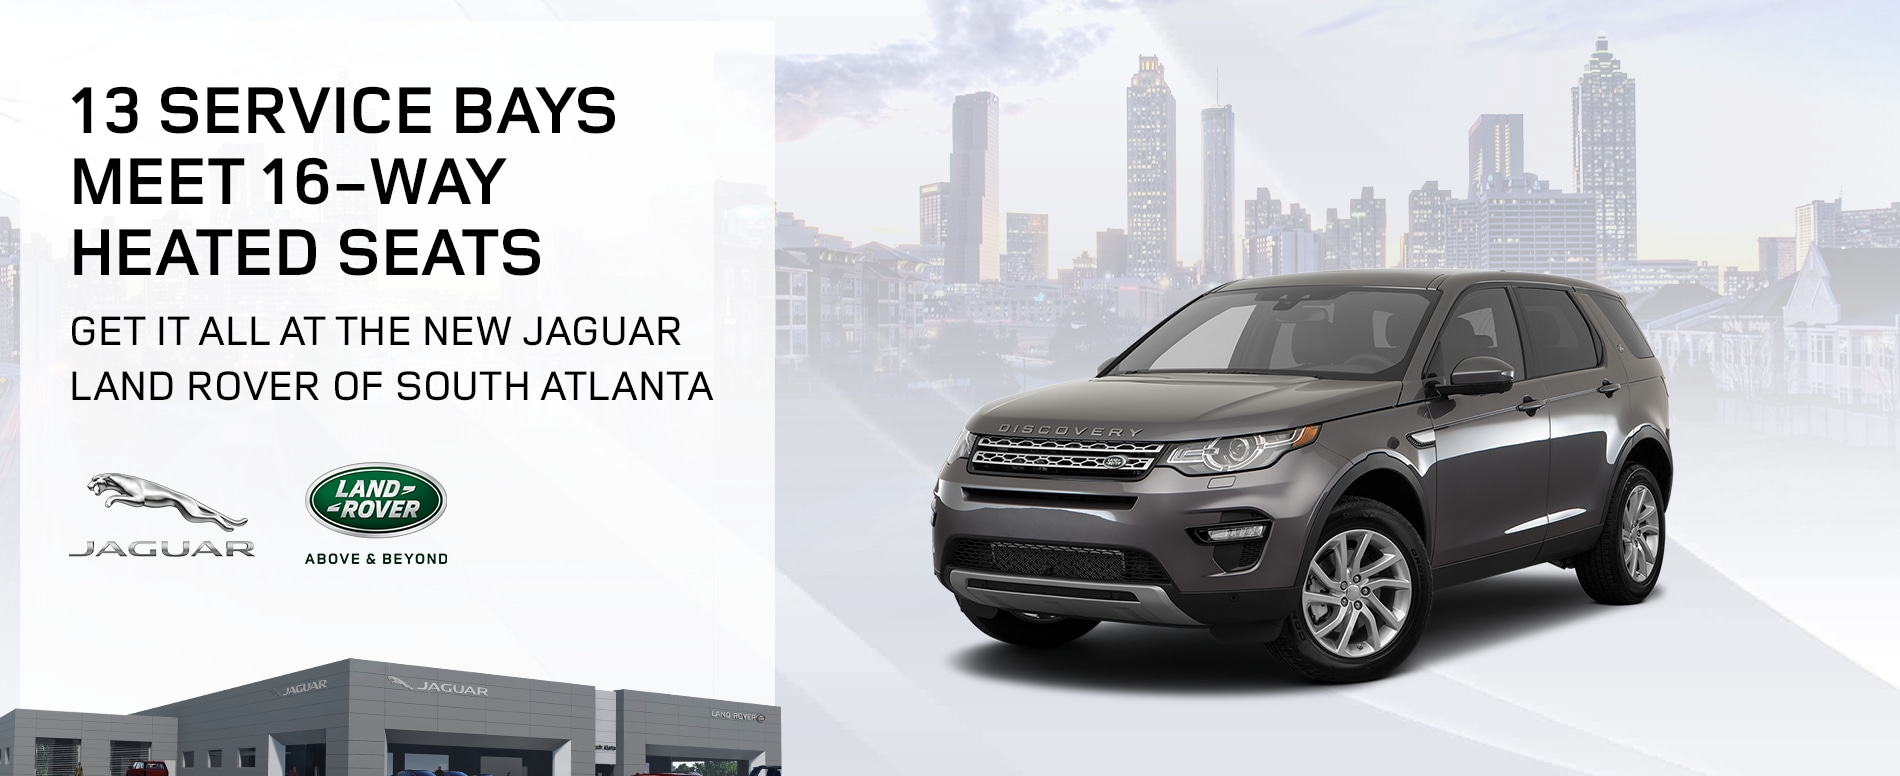 Land Rover South Atlanta